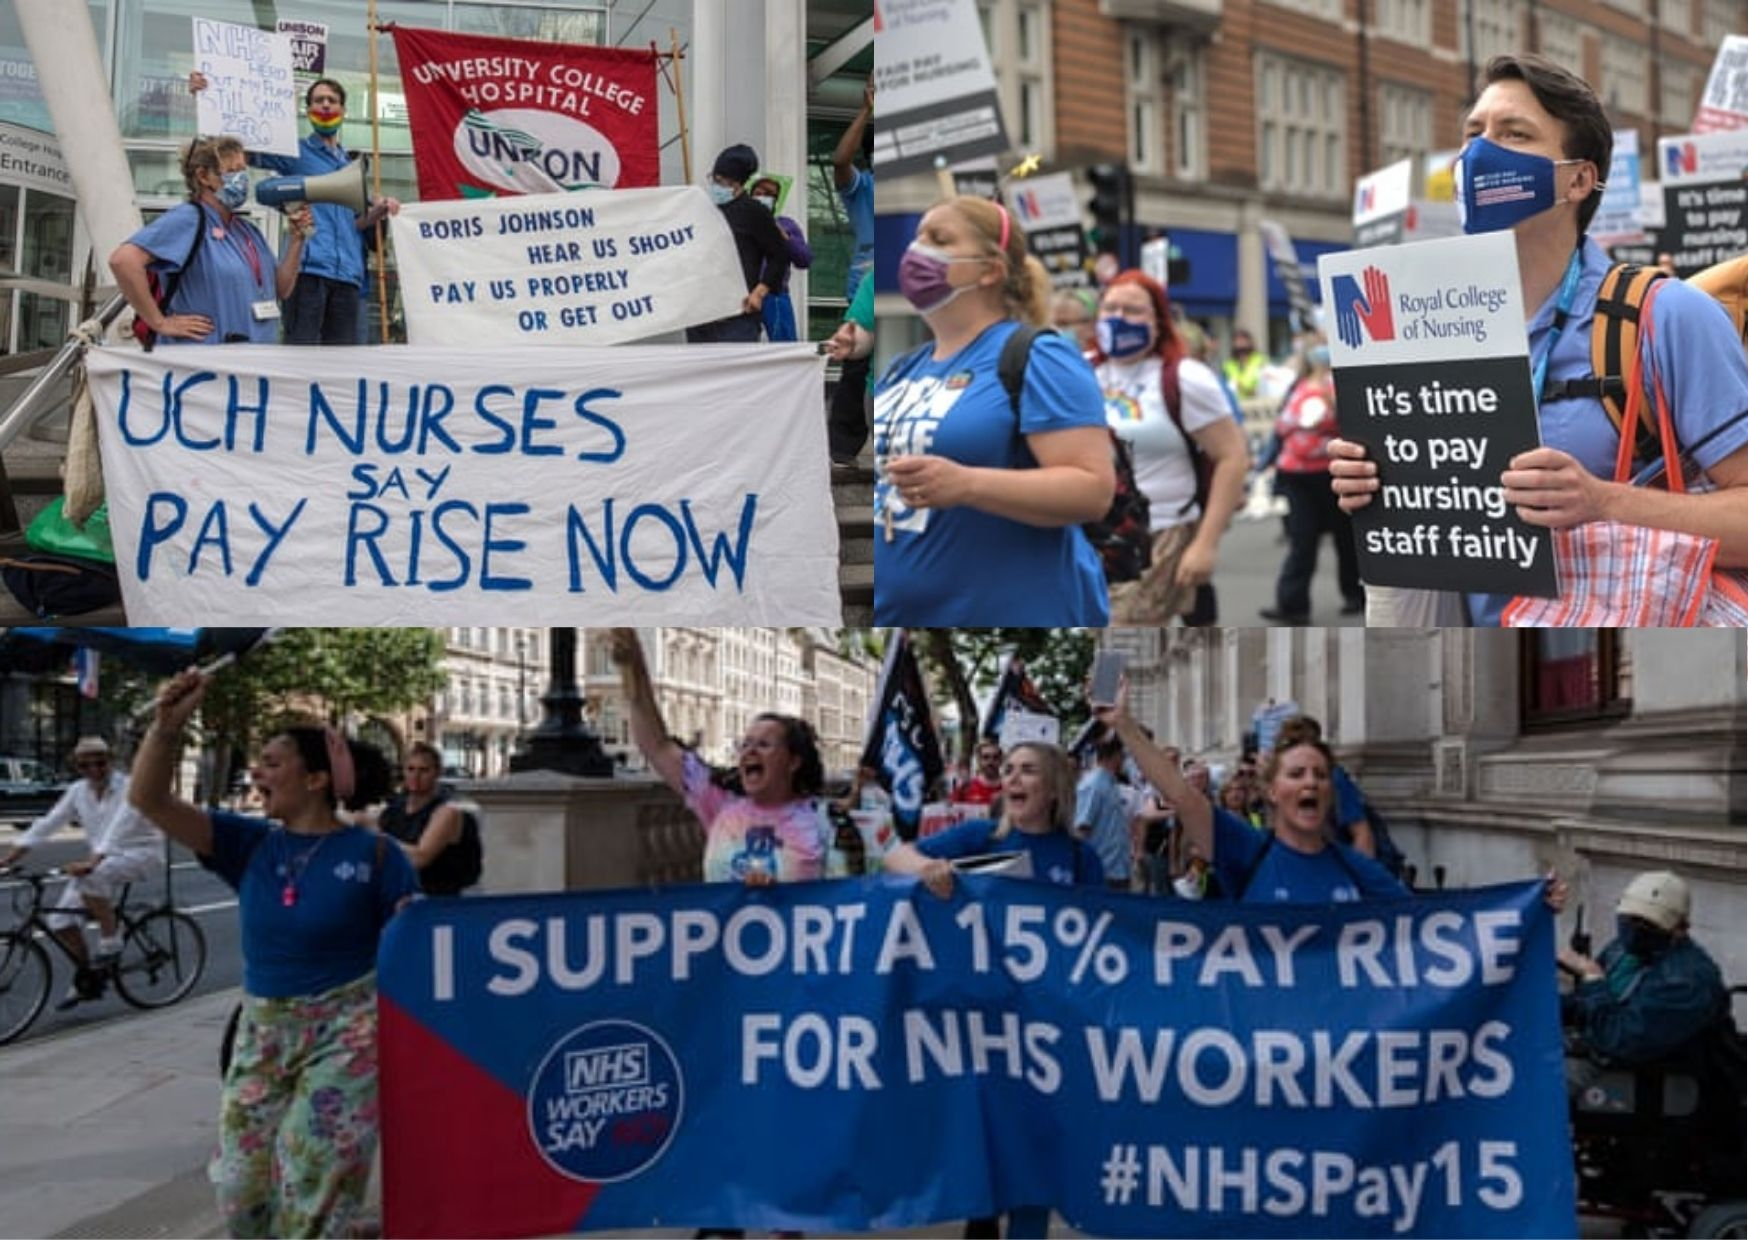 Reasons why NHS staff oppose 3% pay rise